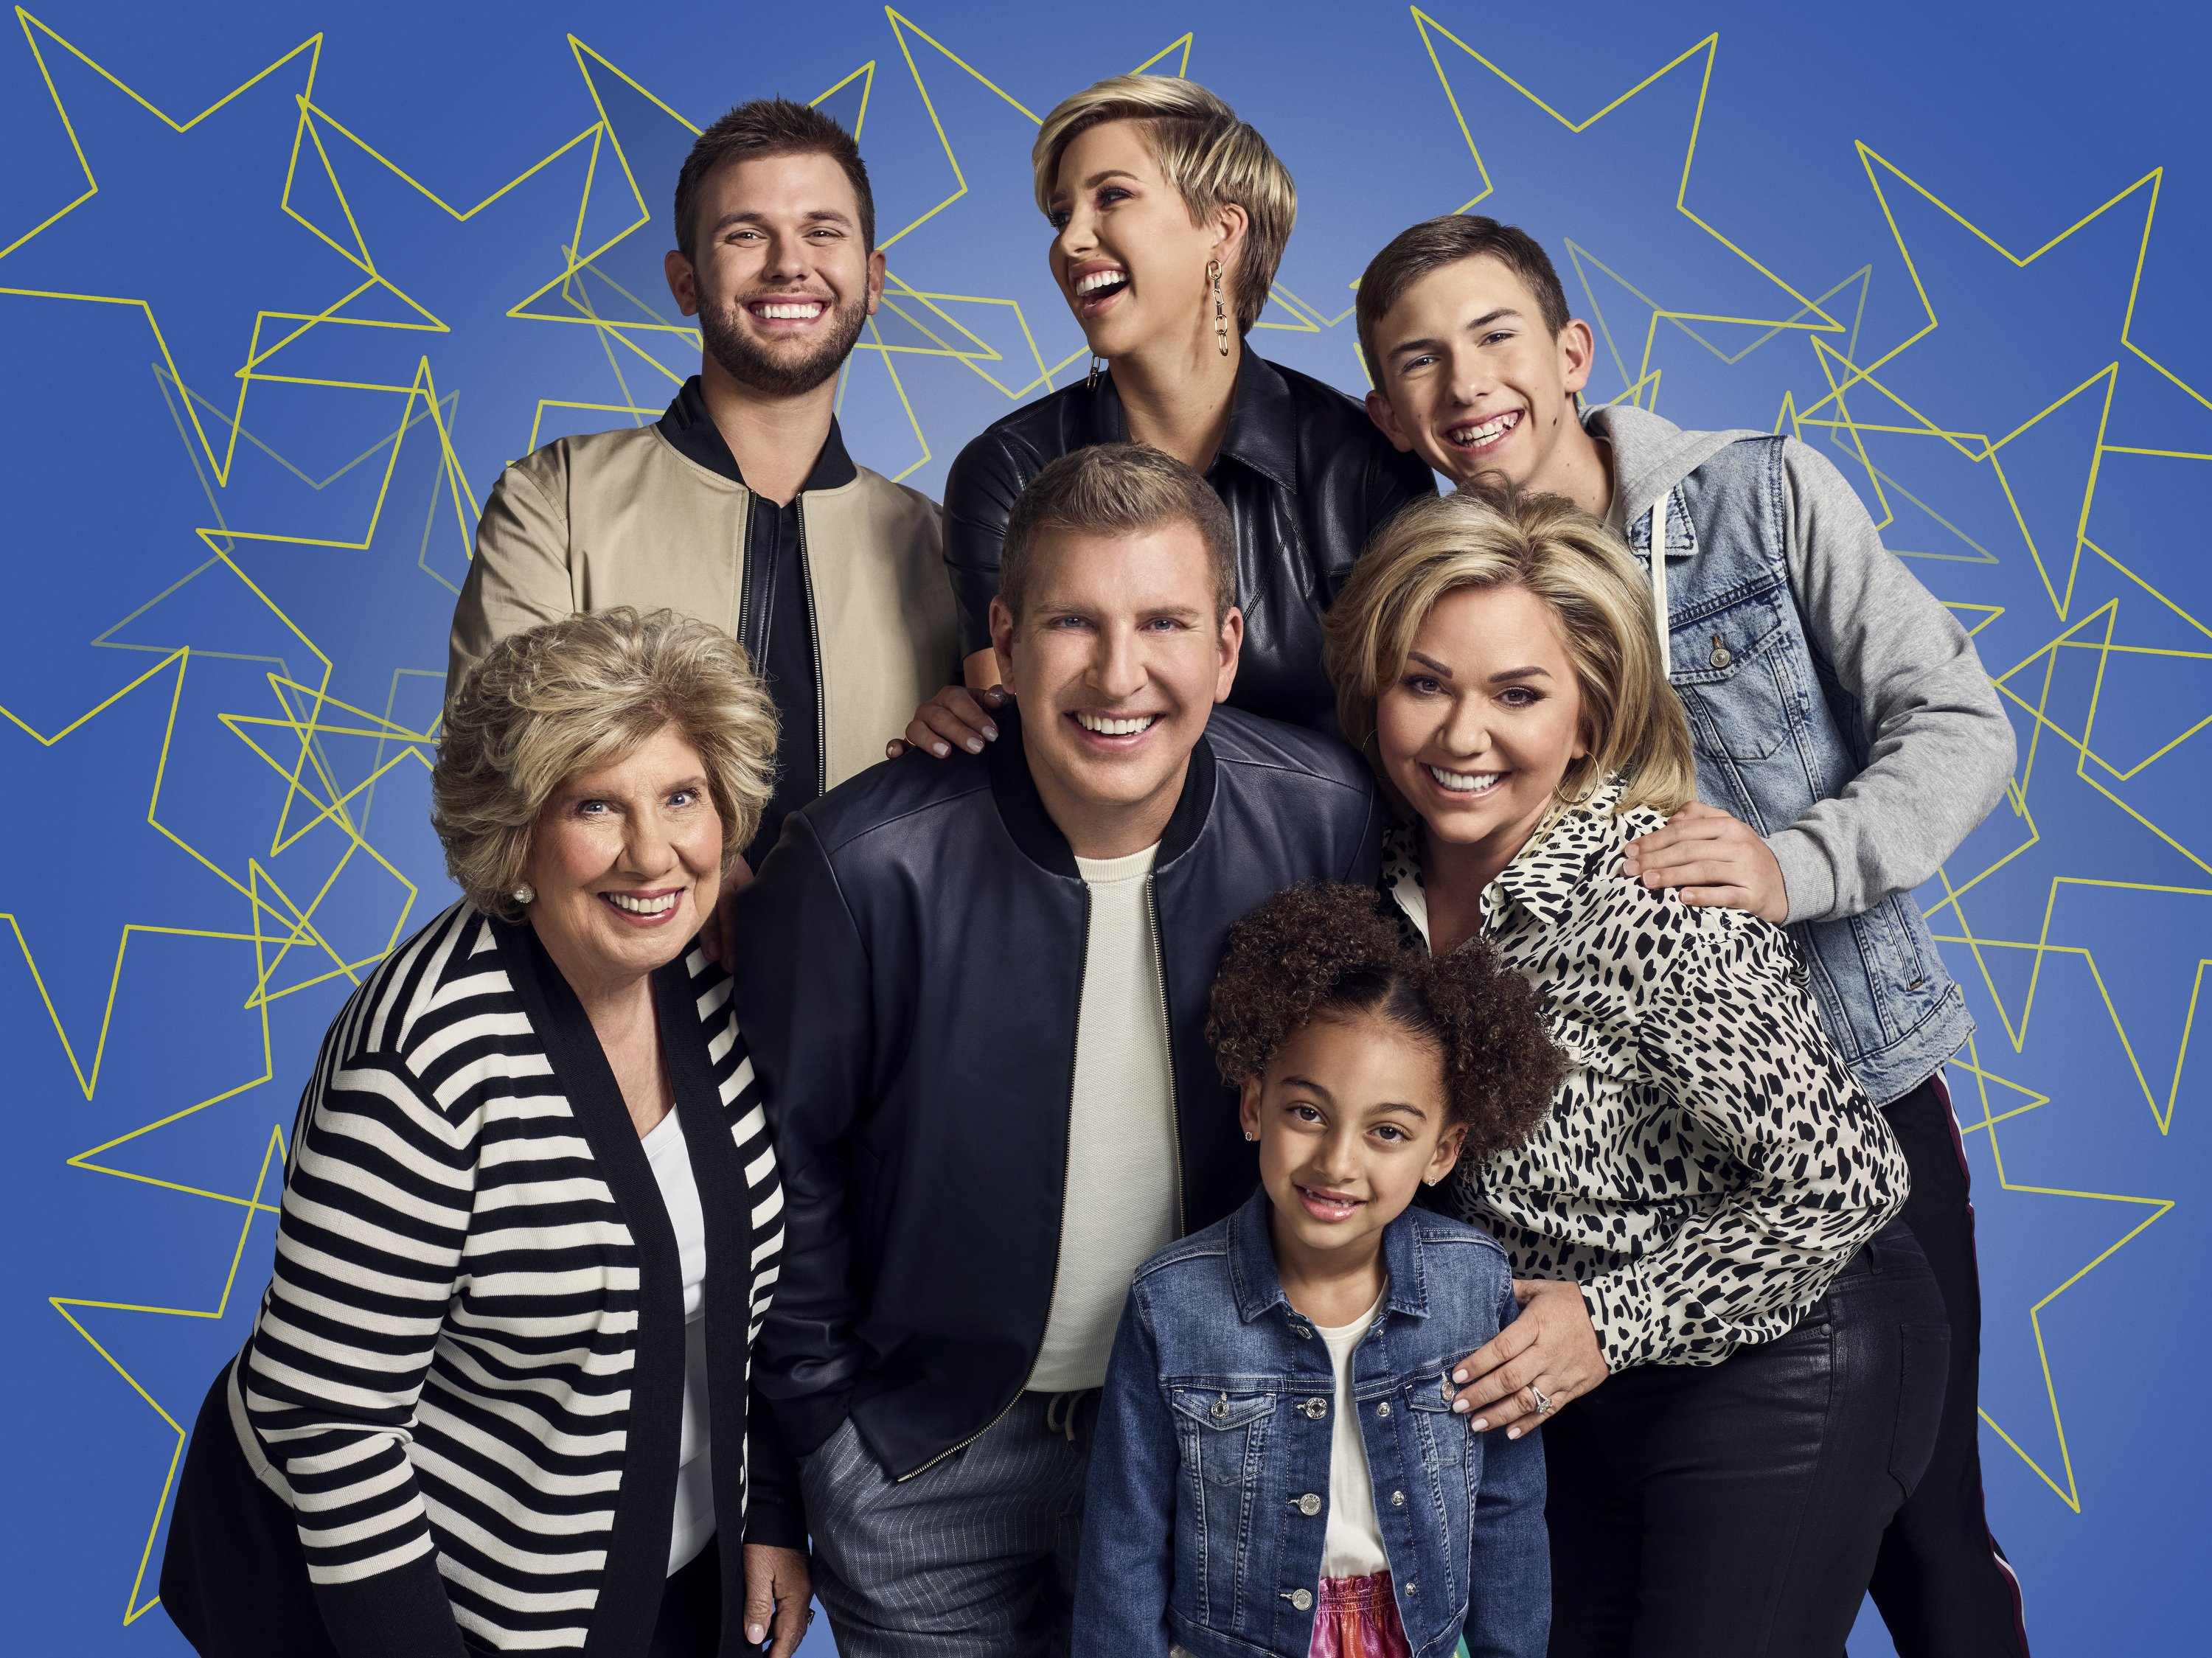 A portrait picture of Faye Chrisley, Chase Chrisley, Todd Chrisley, Savannah Chrisley, Chloe Chrisley, Julie Chrisley, Grayson Chrisley. | Source: Getty Images.